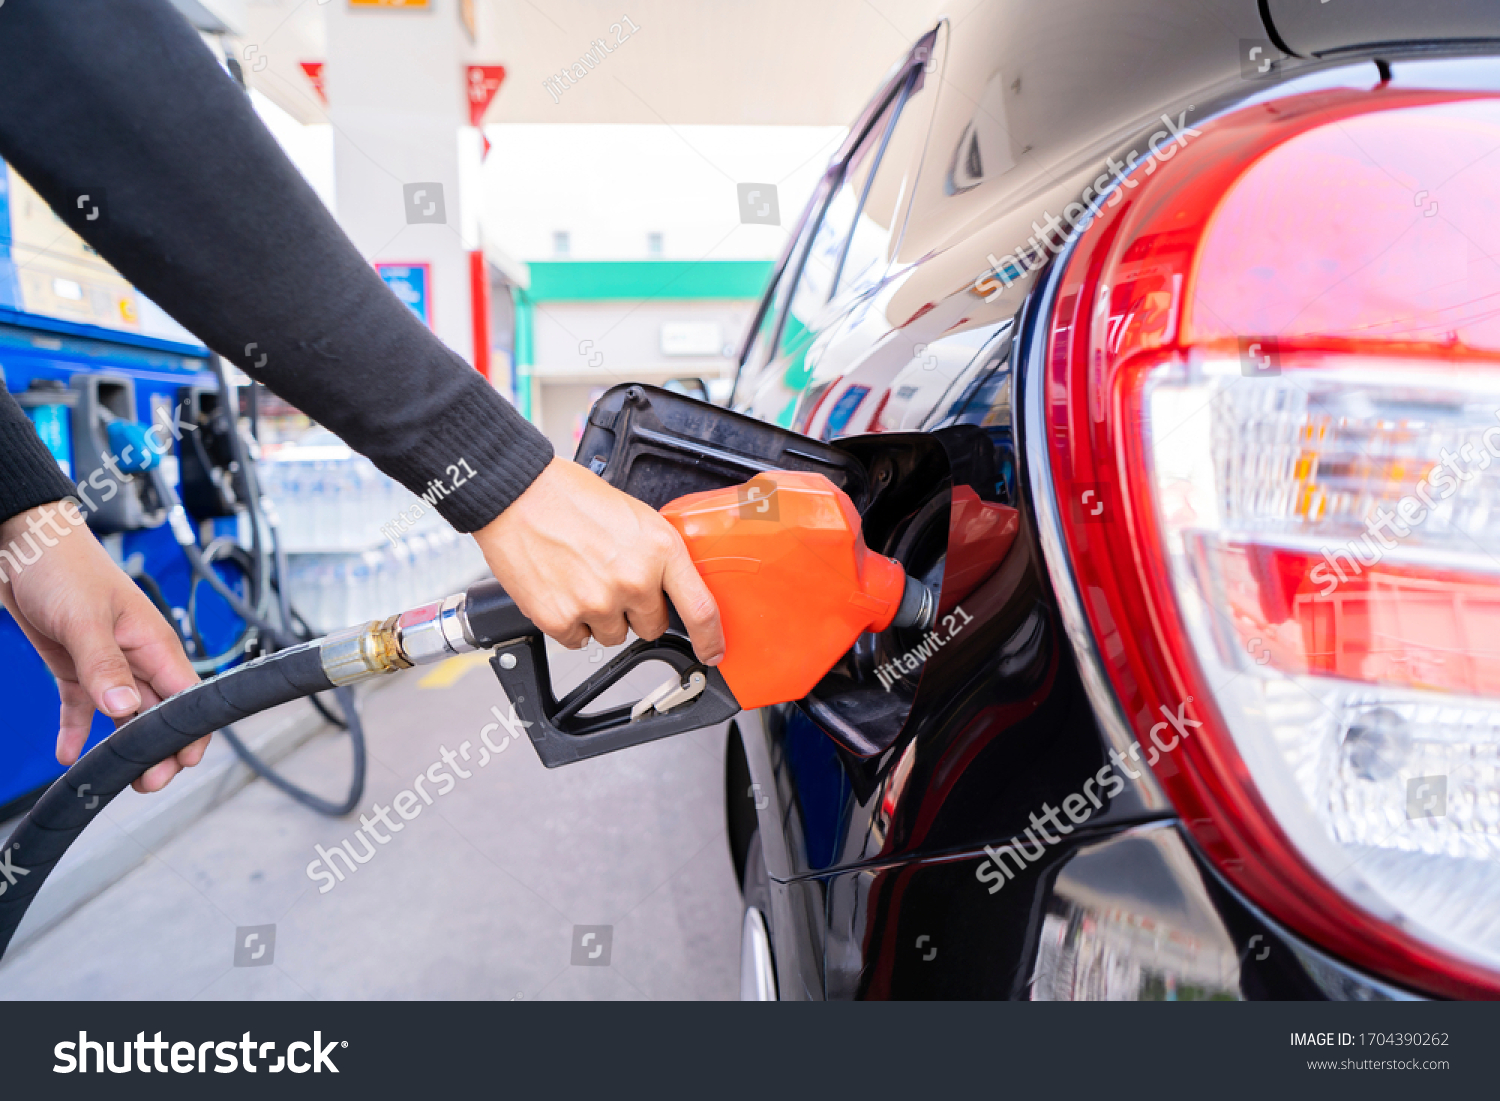 Refuel cars at the fuel pump. The driver hands, refuel and pump the car's gasoline with fuel at the petrol station. Car refueling at a gas station Gas station #1704390262